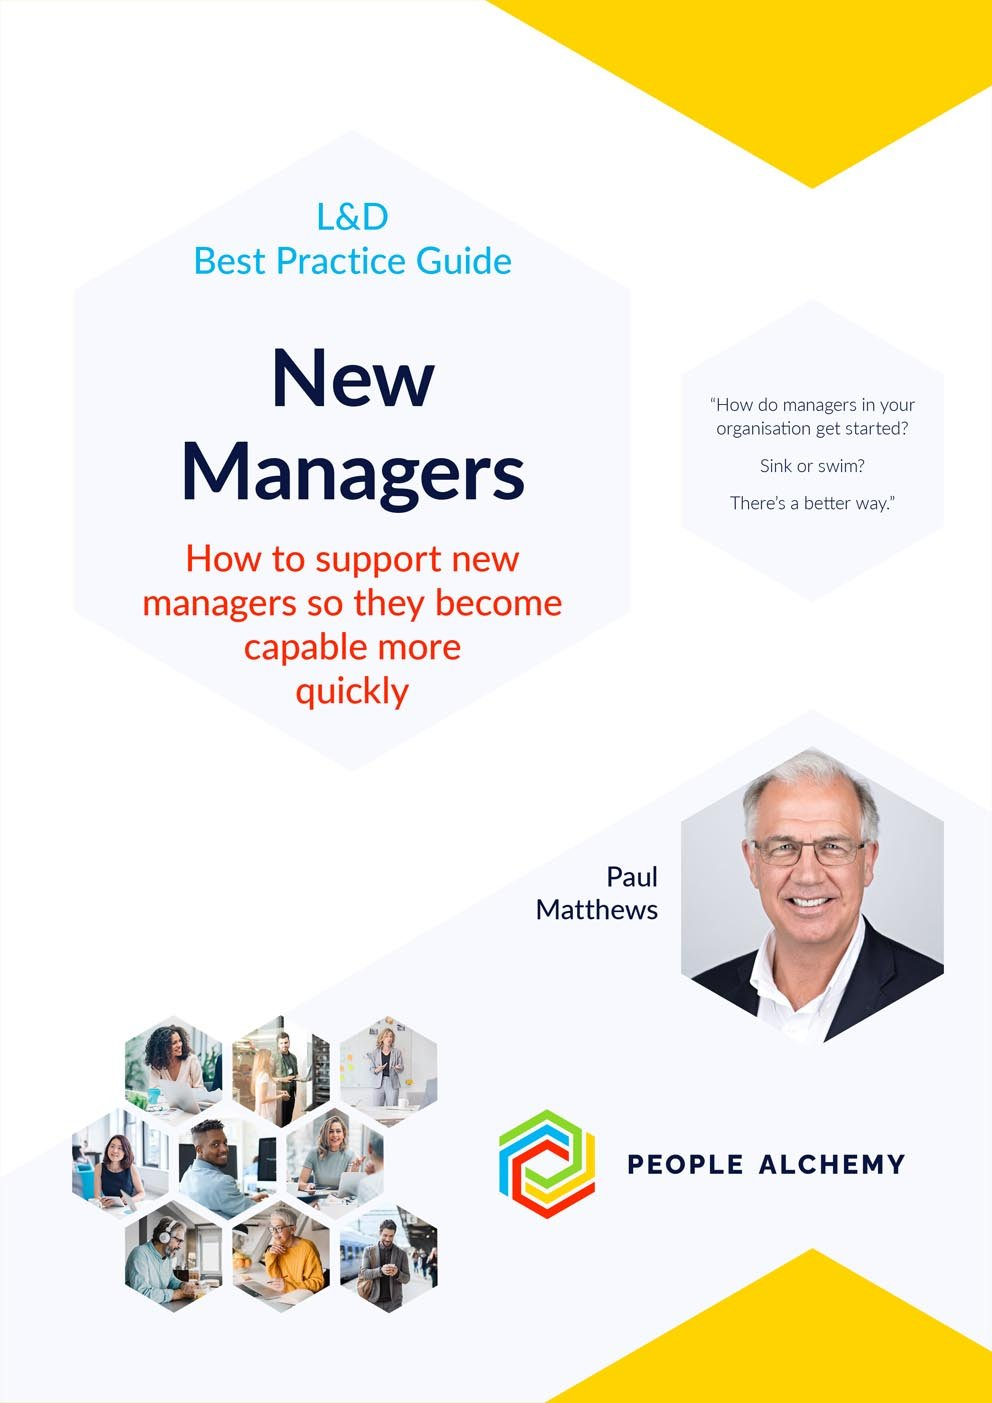 https://peoplealchemy.com/wp-content/uploads/2021/09/PA-Best-Practice-Guides-2021-covers-5.jpg